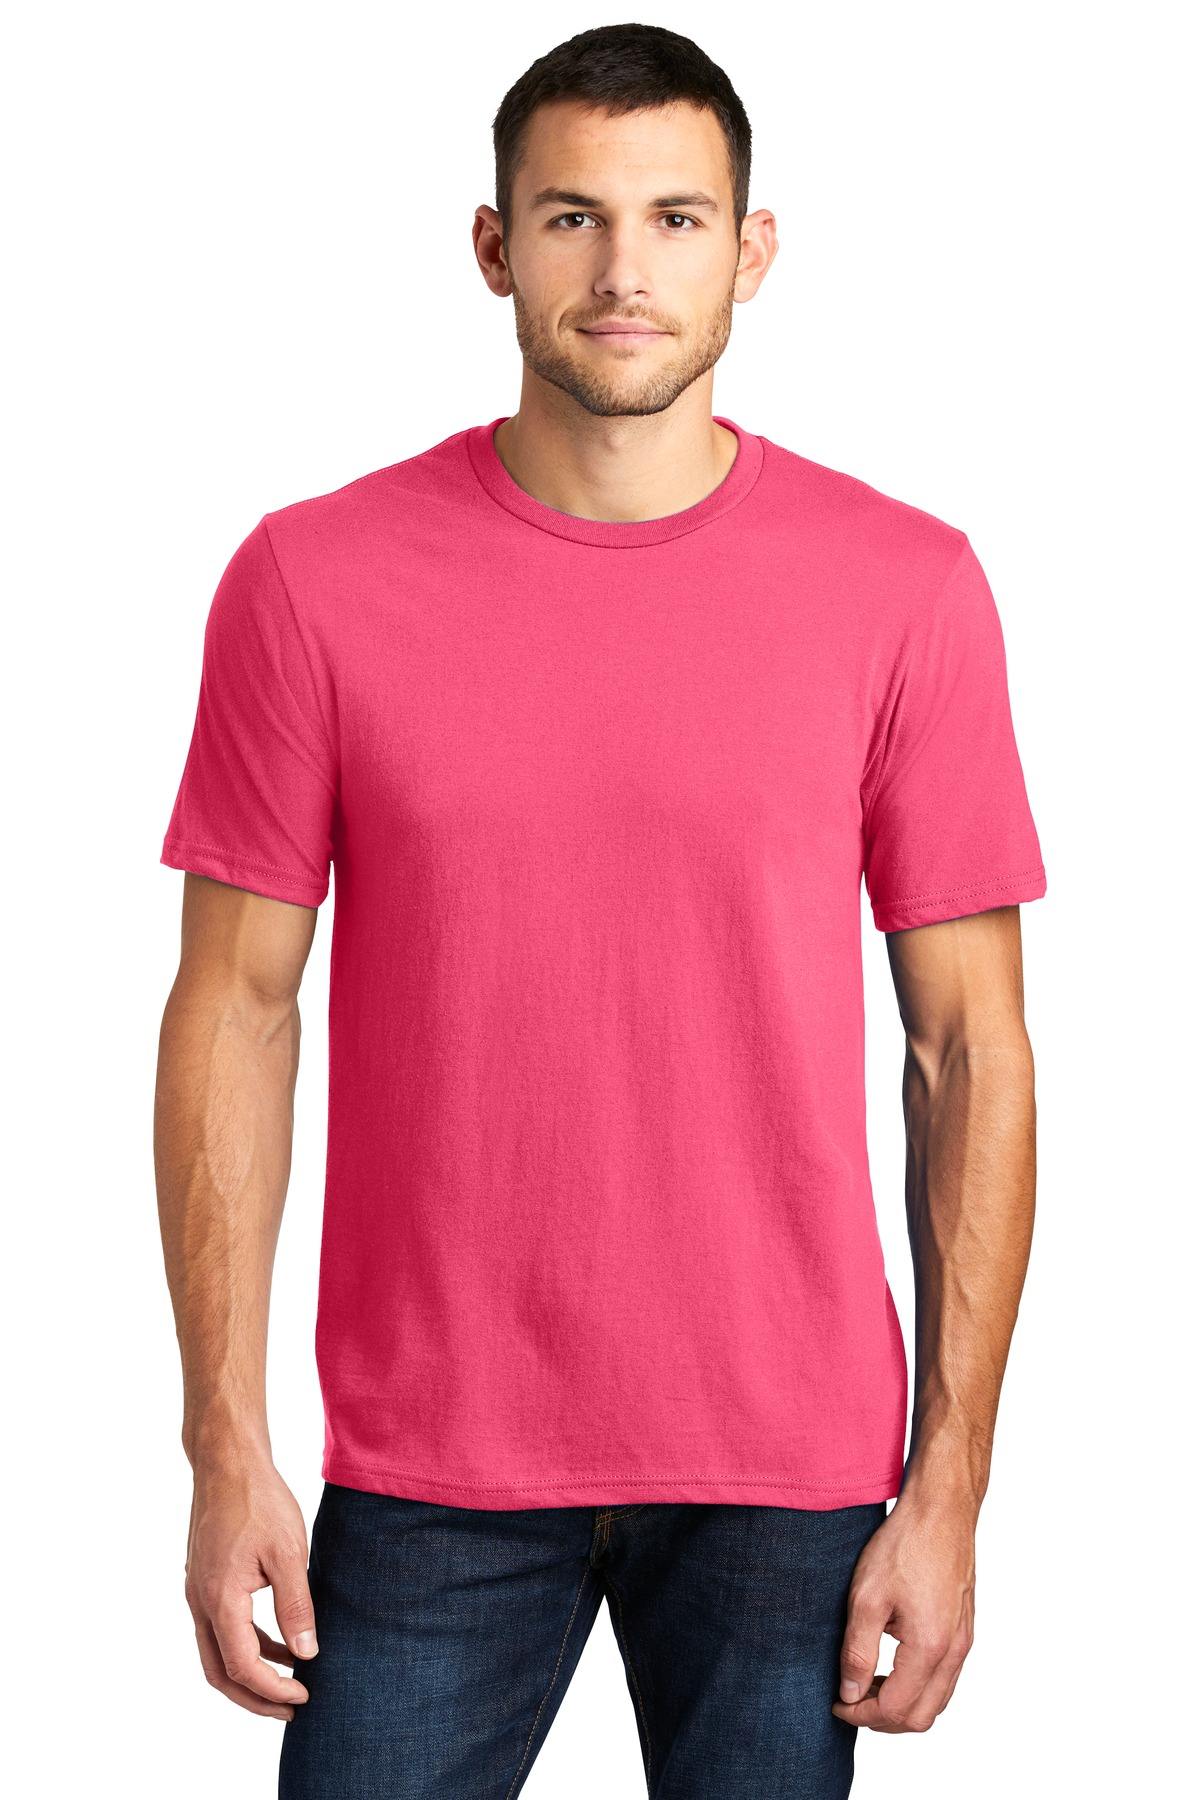 District ®  Very Important Tee ® . DT6000 - Neon Pink